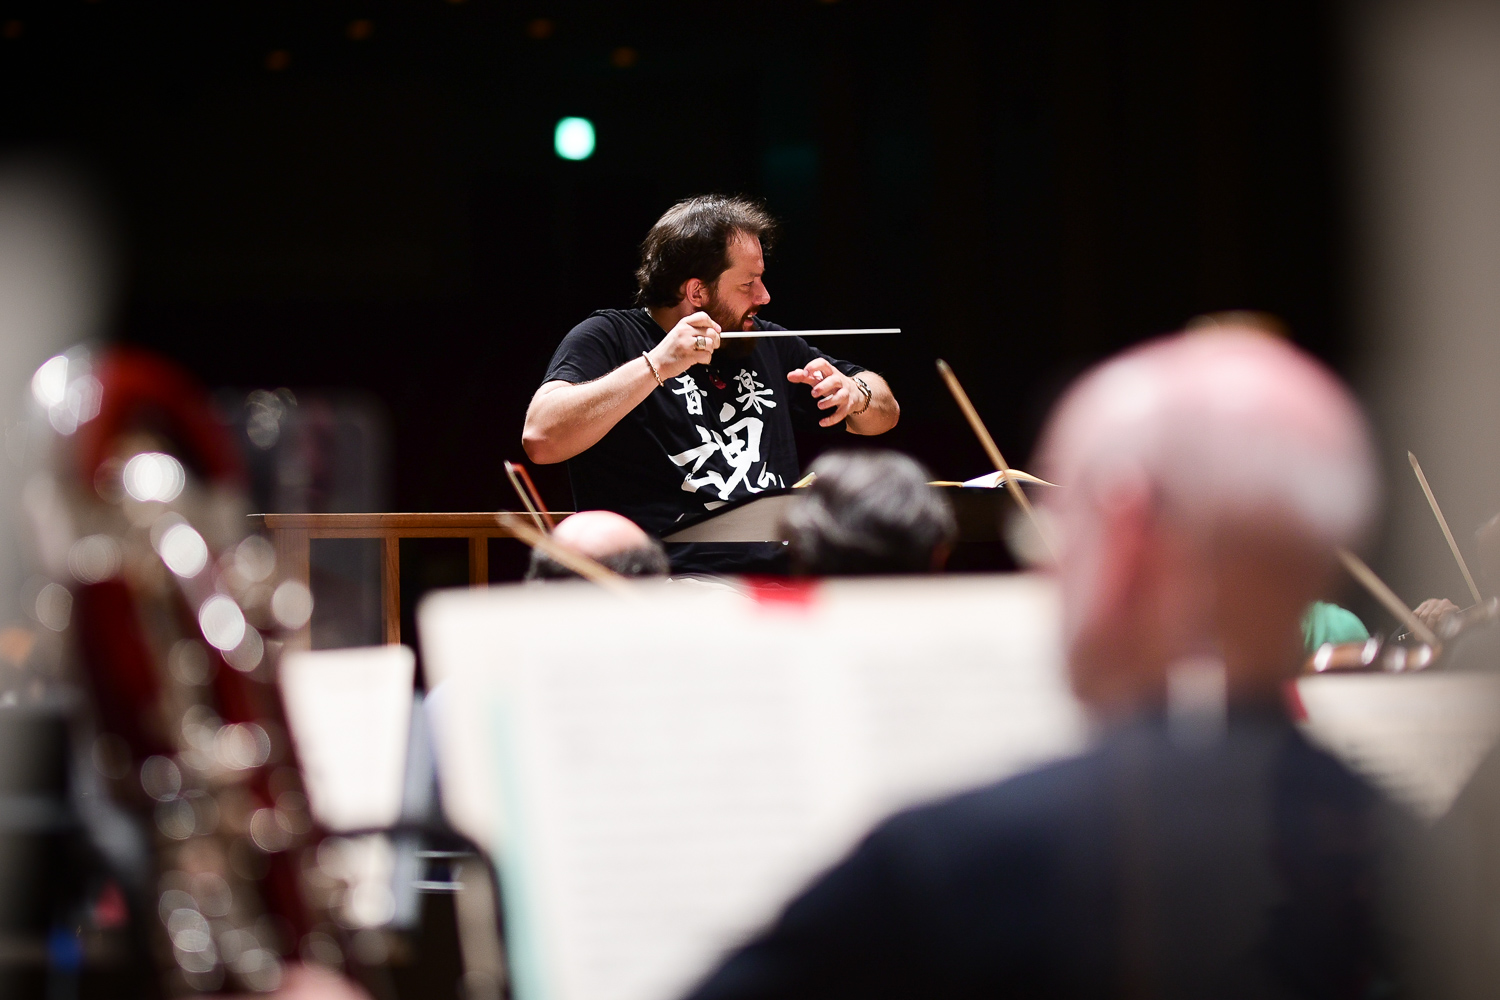 Maestro Andris Nelsons makes eye contact with Violins during sound check for Mahler, No. 1